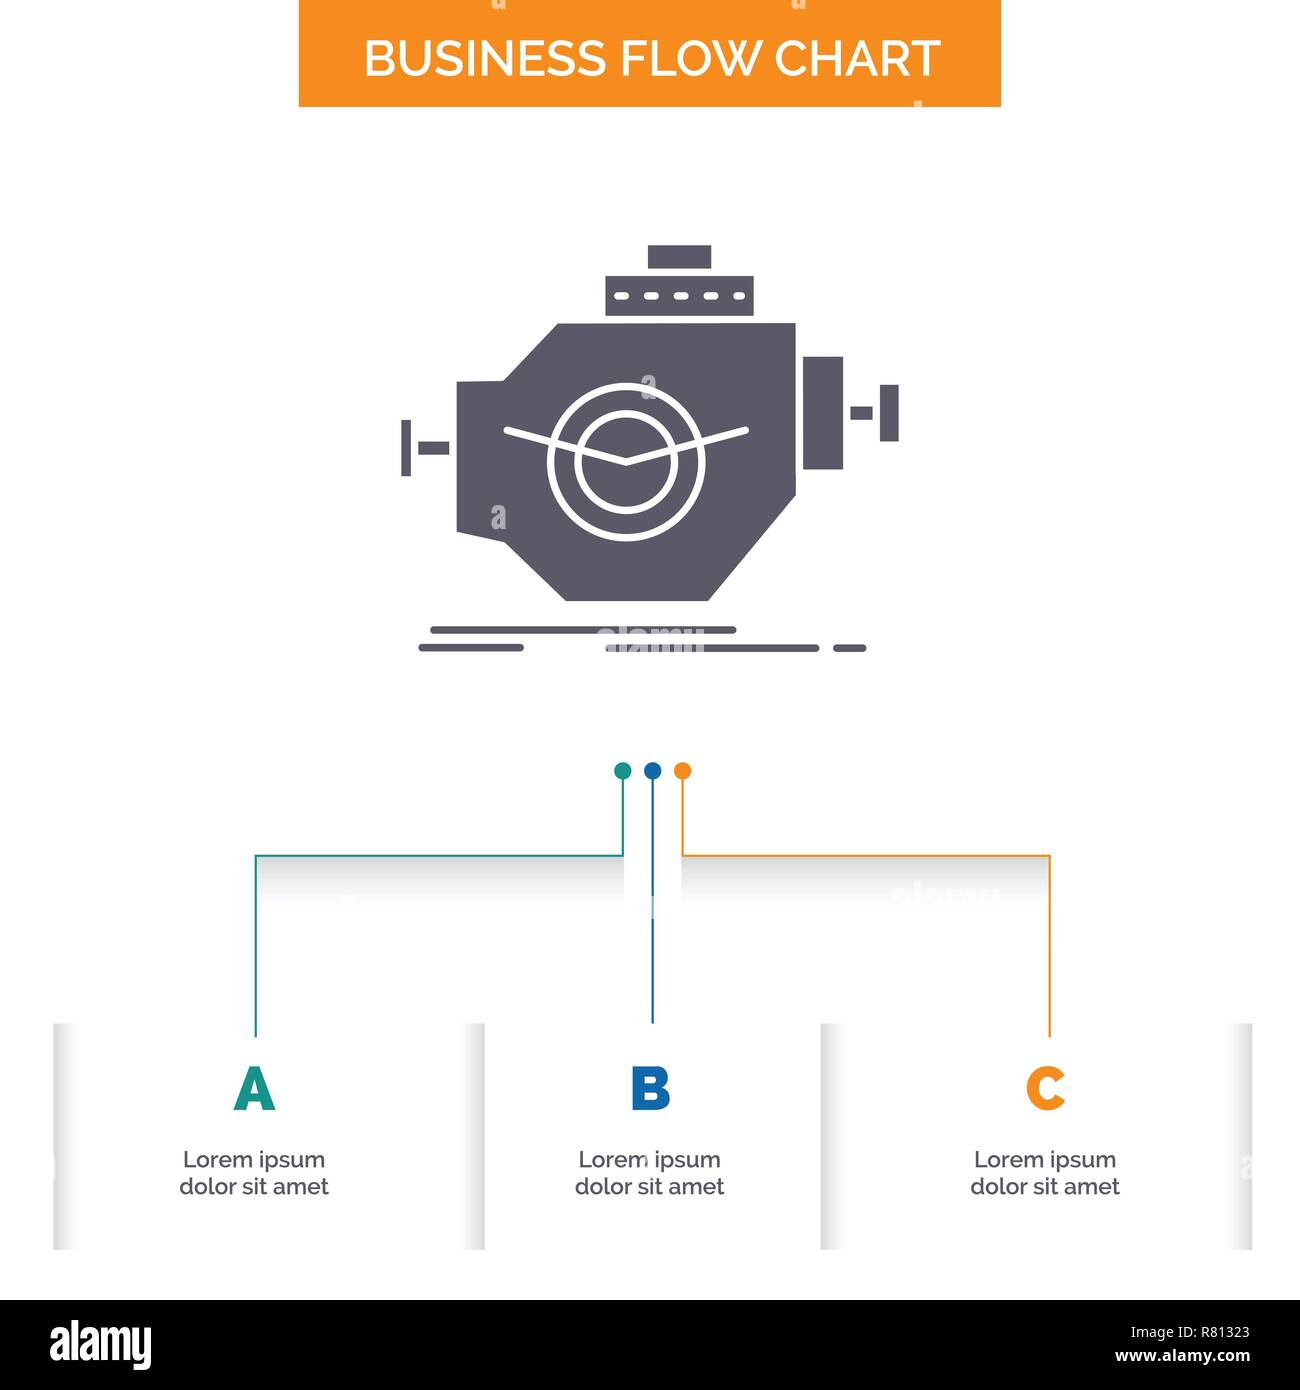 hight resolution of engine industry machine motor performance business flow chart design with 3 steps glyph icon for presentation background template place for text